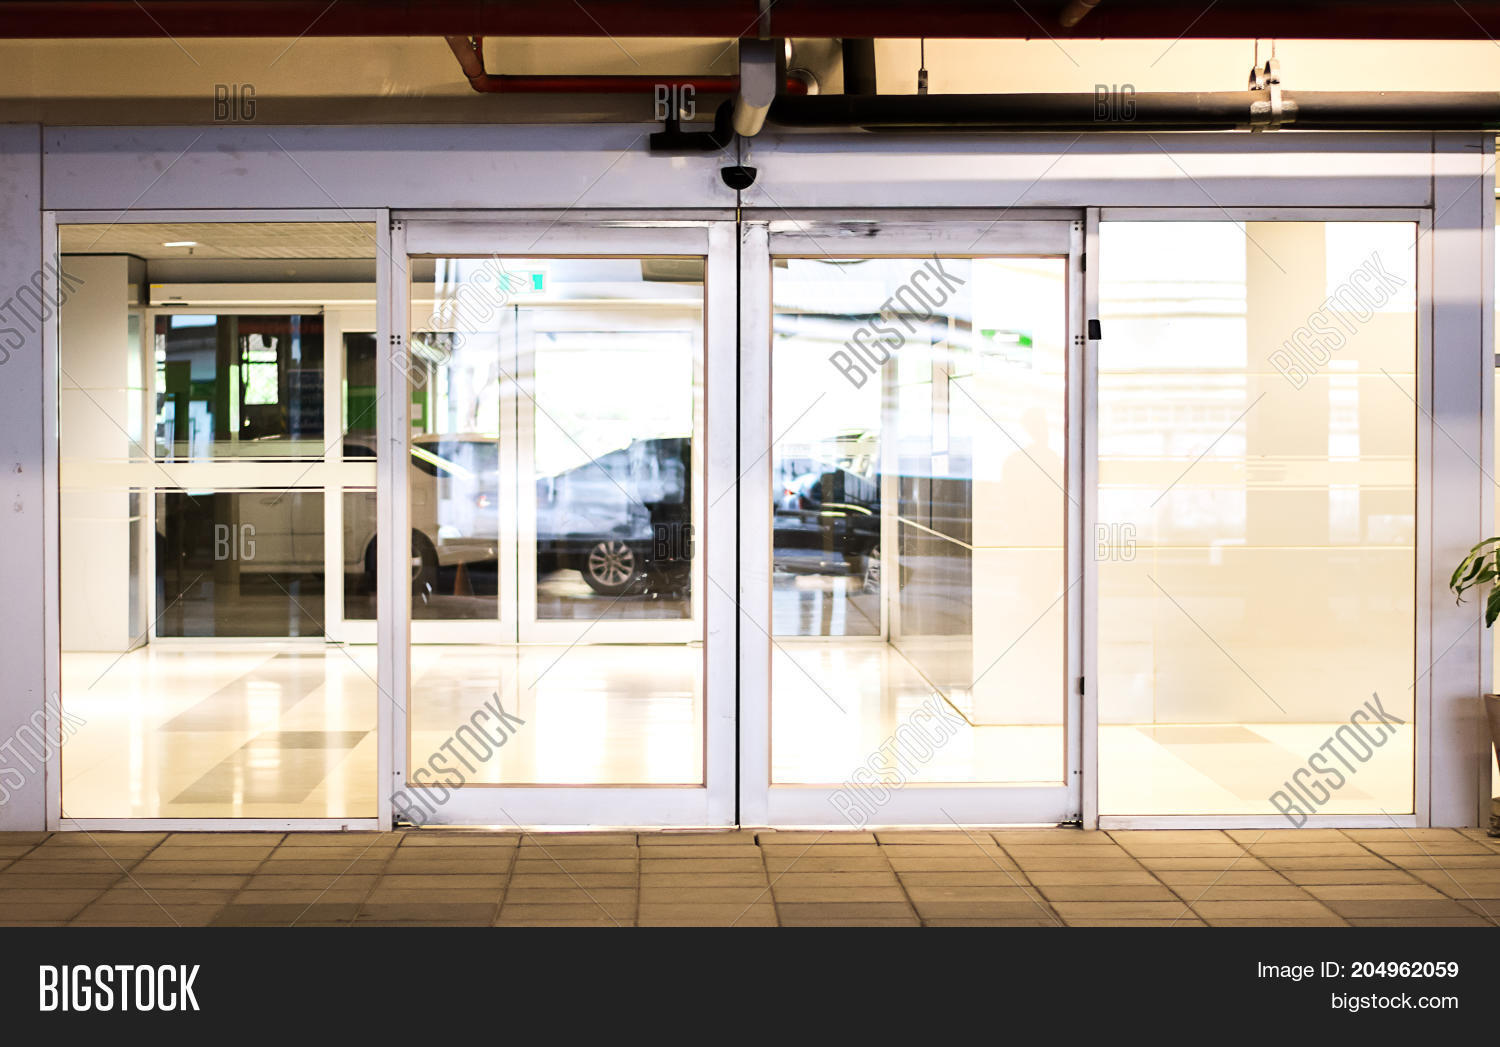 great sliding glass office doors 2 telescopic great sliding glass office doors 2 blank entranceat airportglass in great sliding glass office doors door with notice